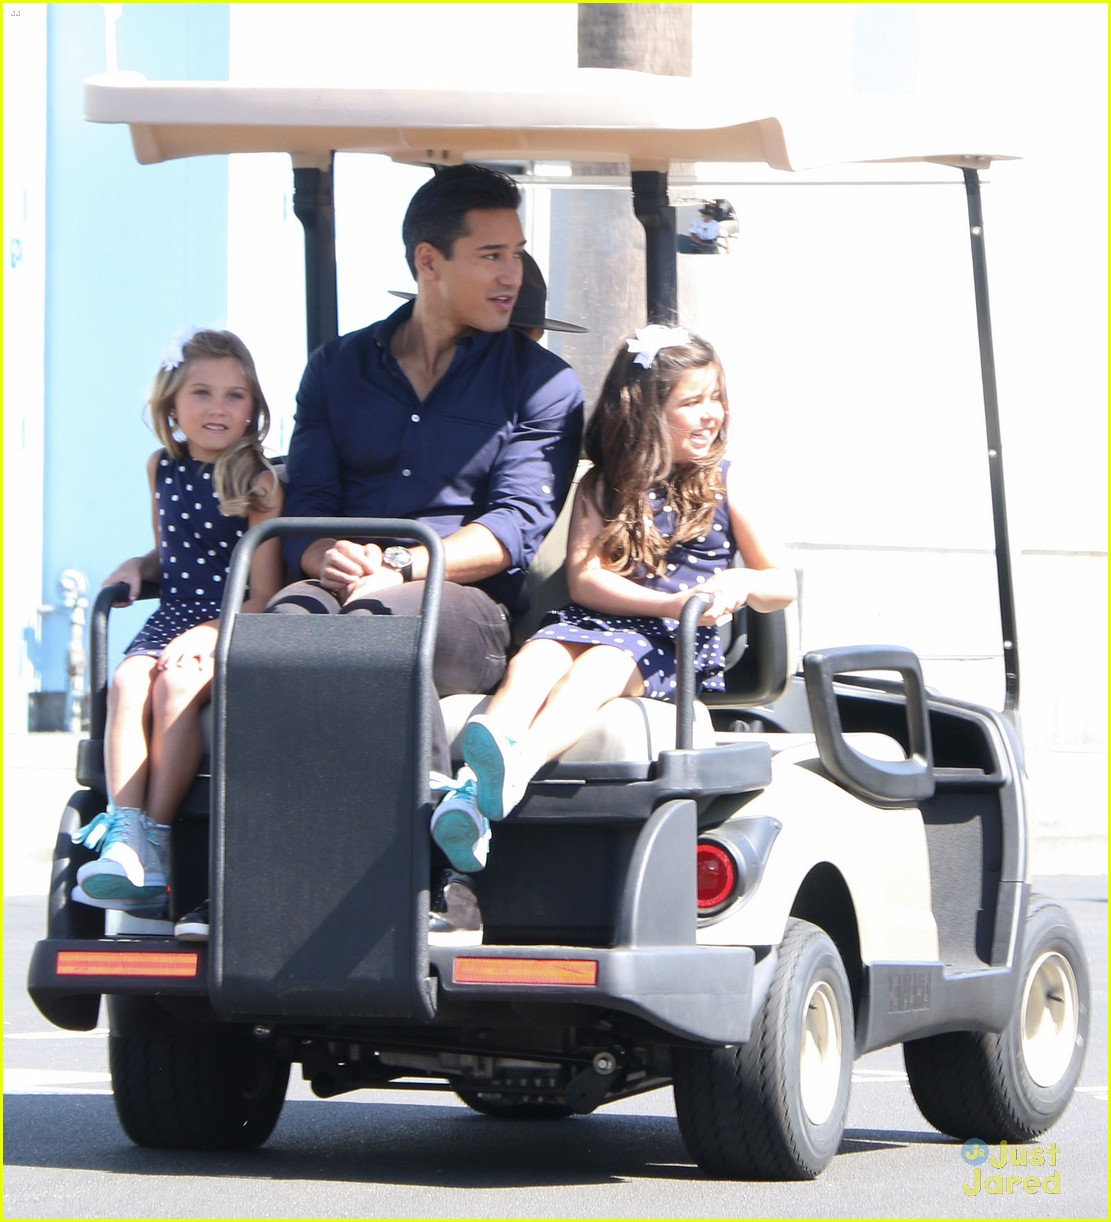 sophia grace rosie golf cart cuties extra 19